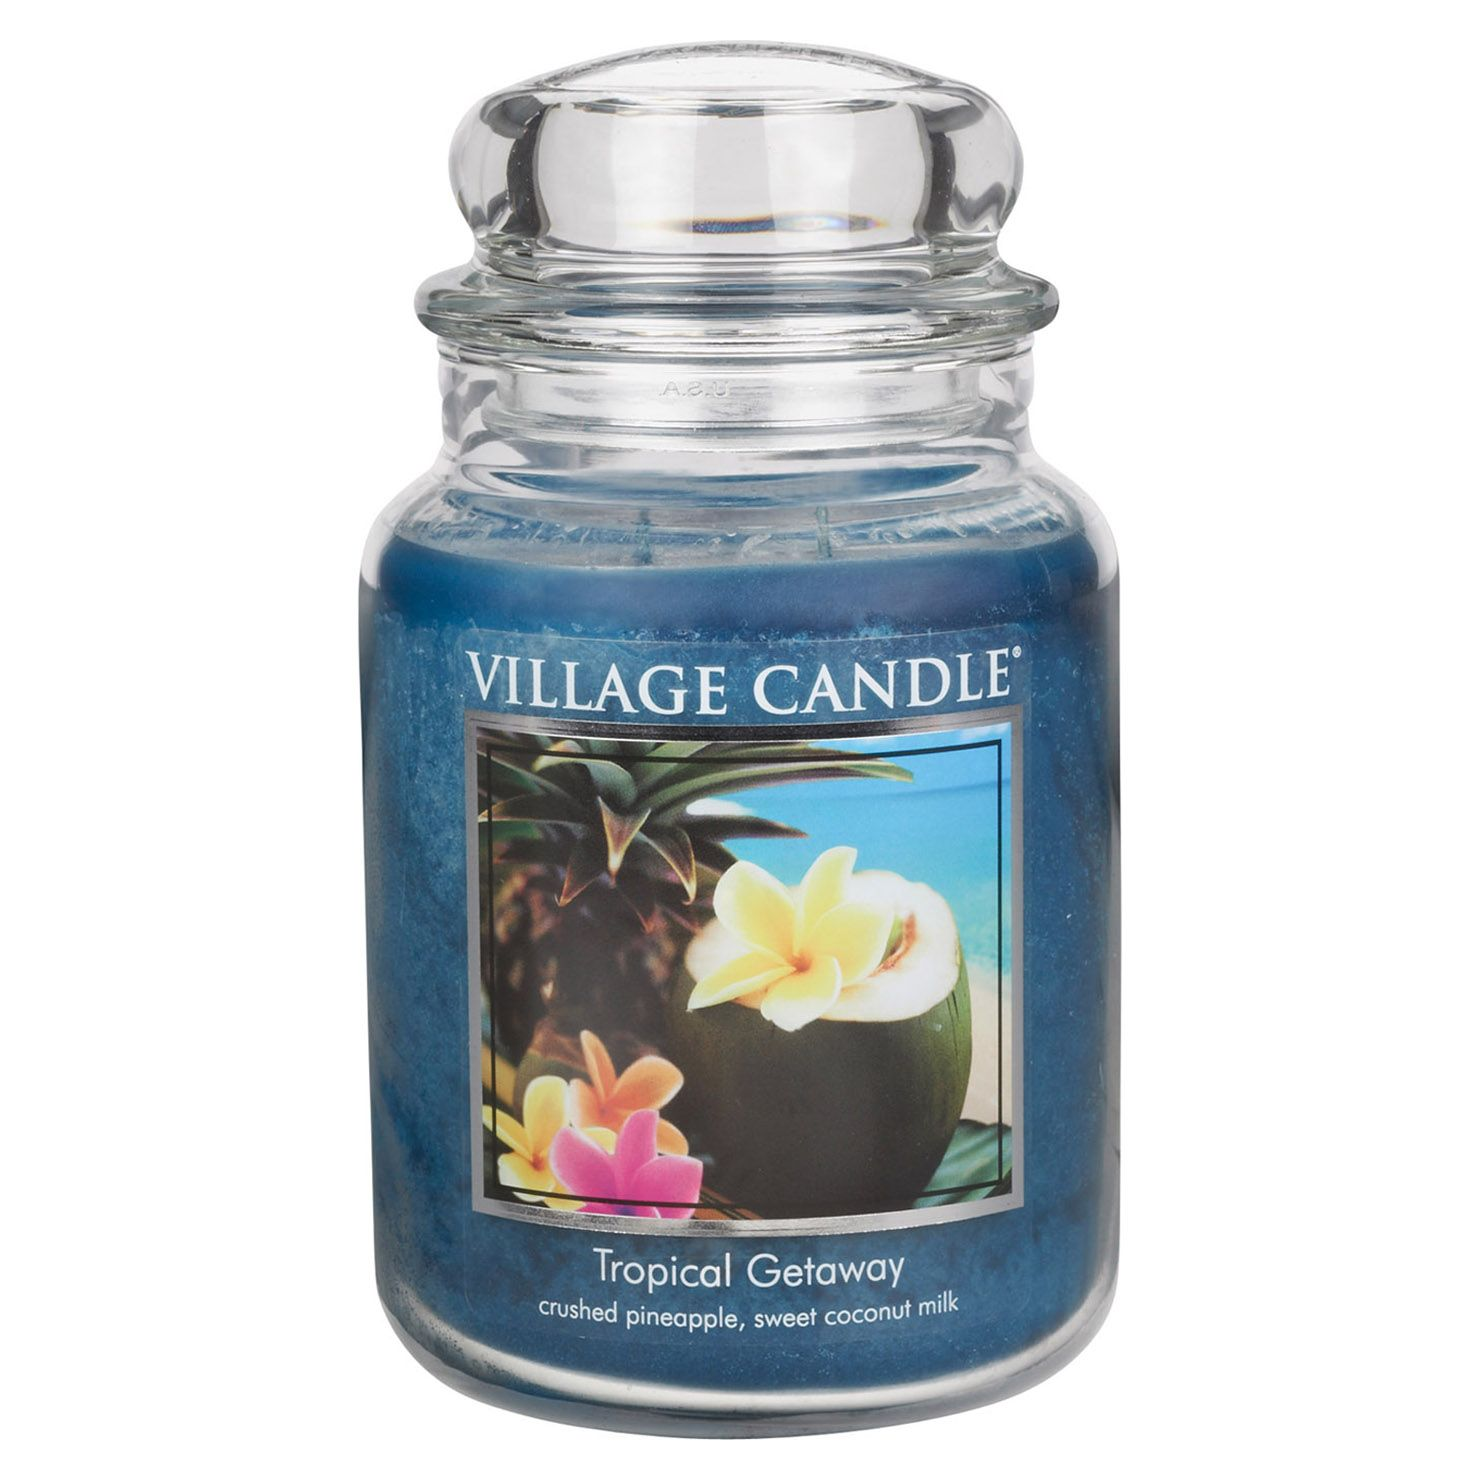 Village Candle Tropical Getaway Large Jar Candle